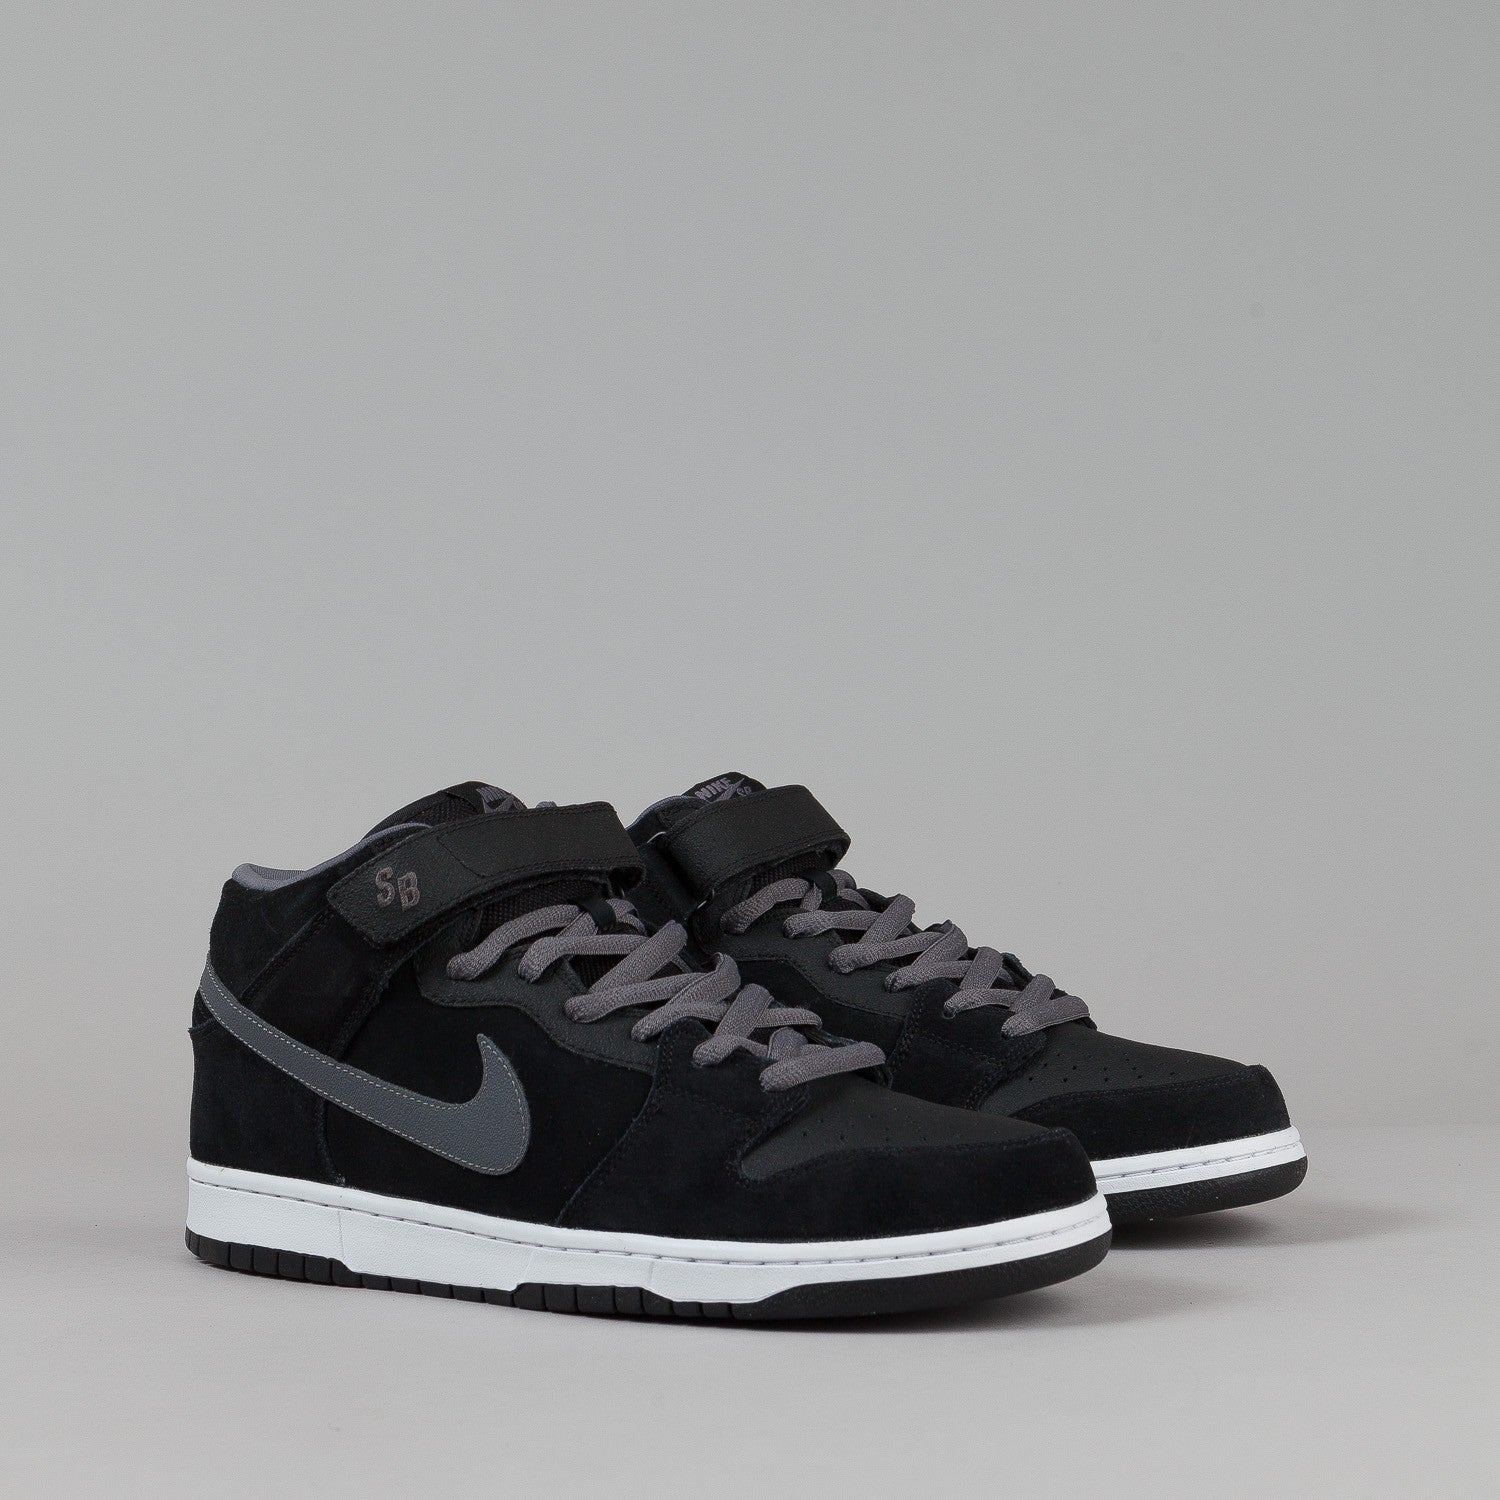 Nike SB Dunk Mid Pro Shoes - Black / Light Graphite